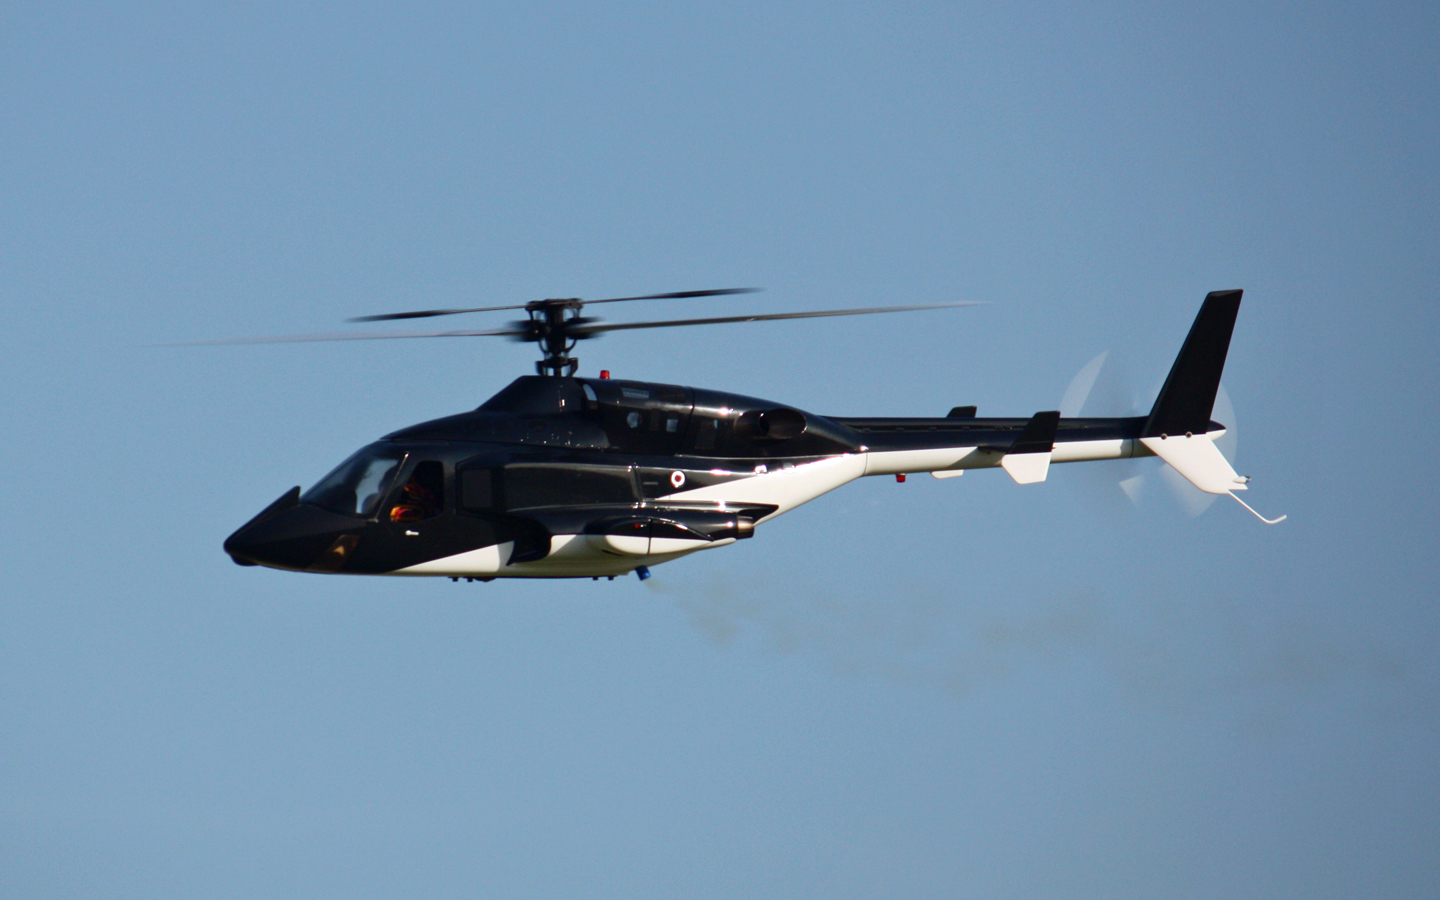 Real Airwolf Helicopter Pictures to Pin on Pinterest ...